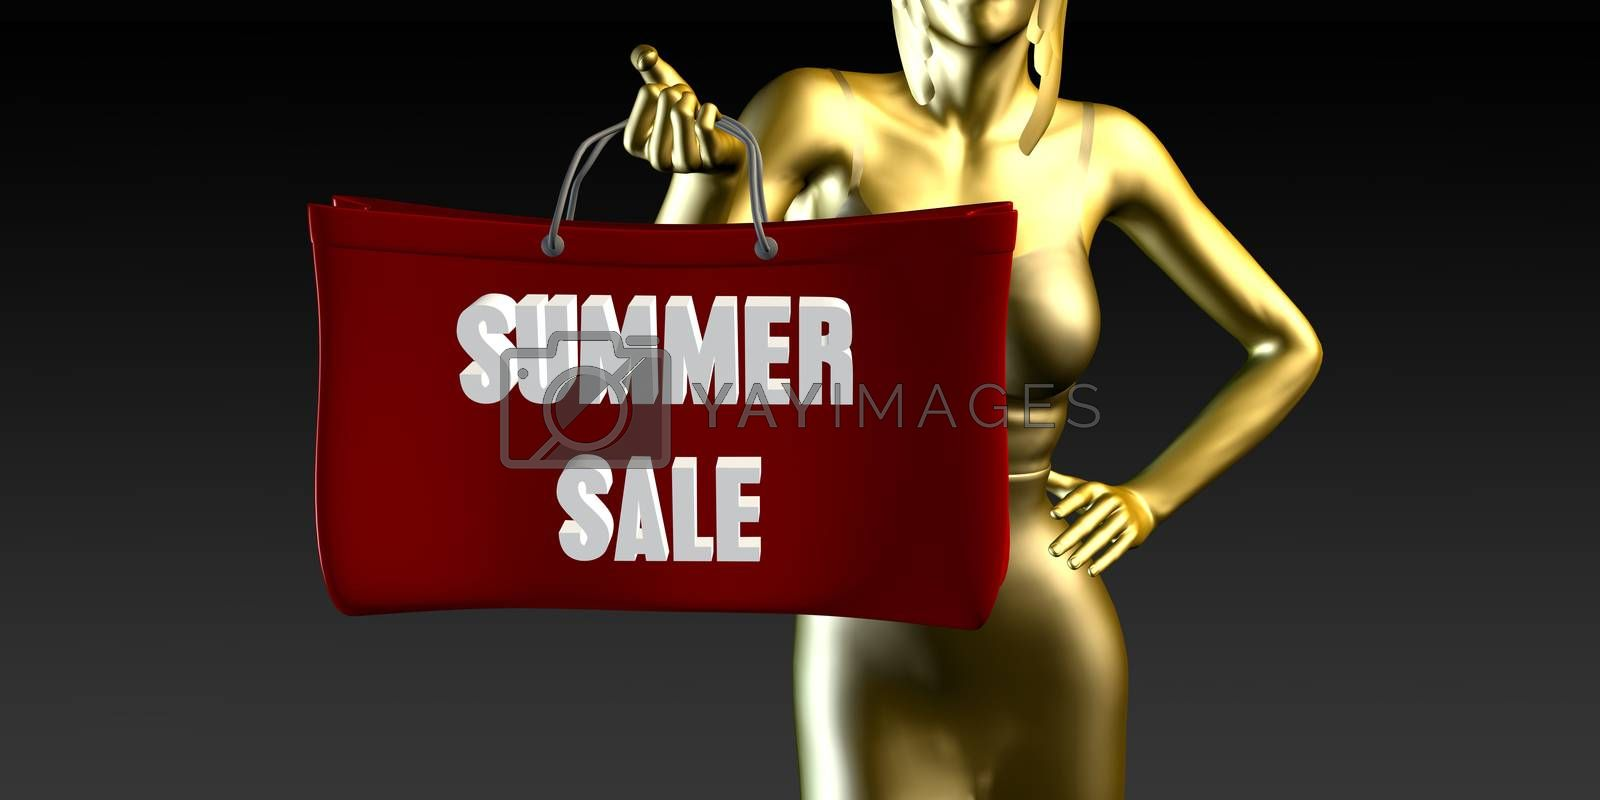 Summer Sale or Sales as a Special Event